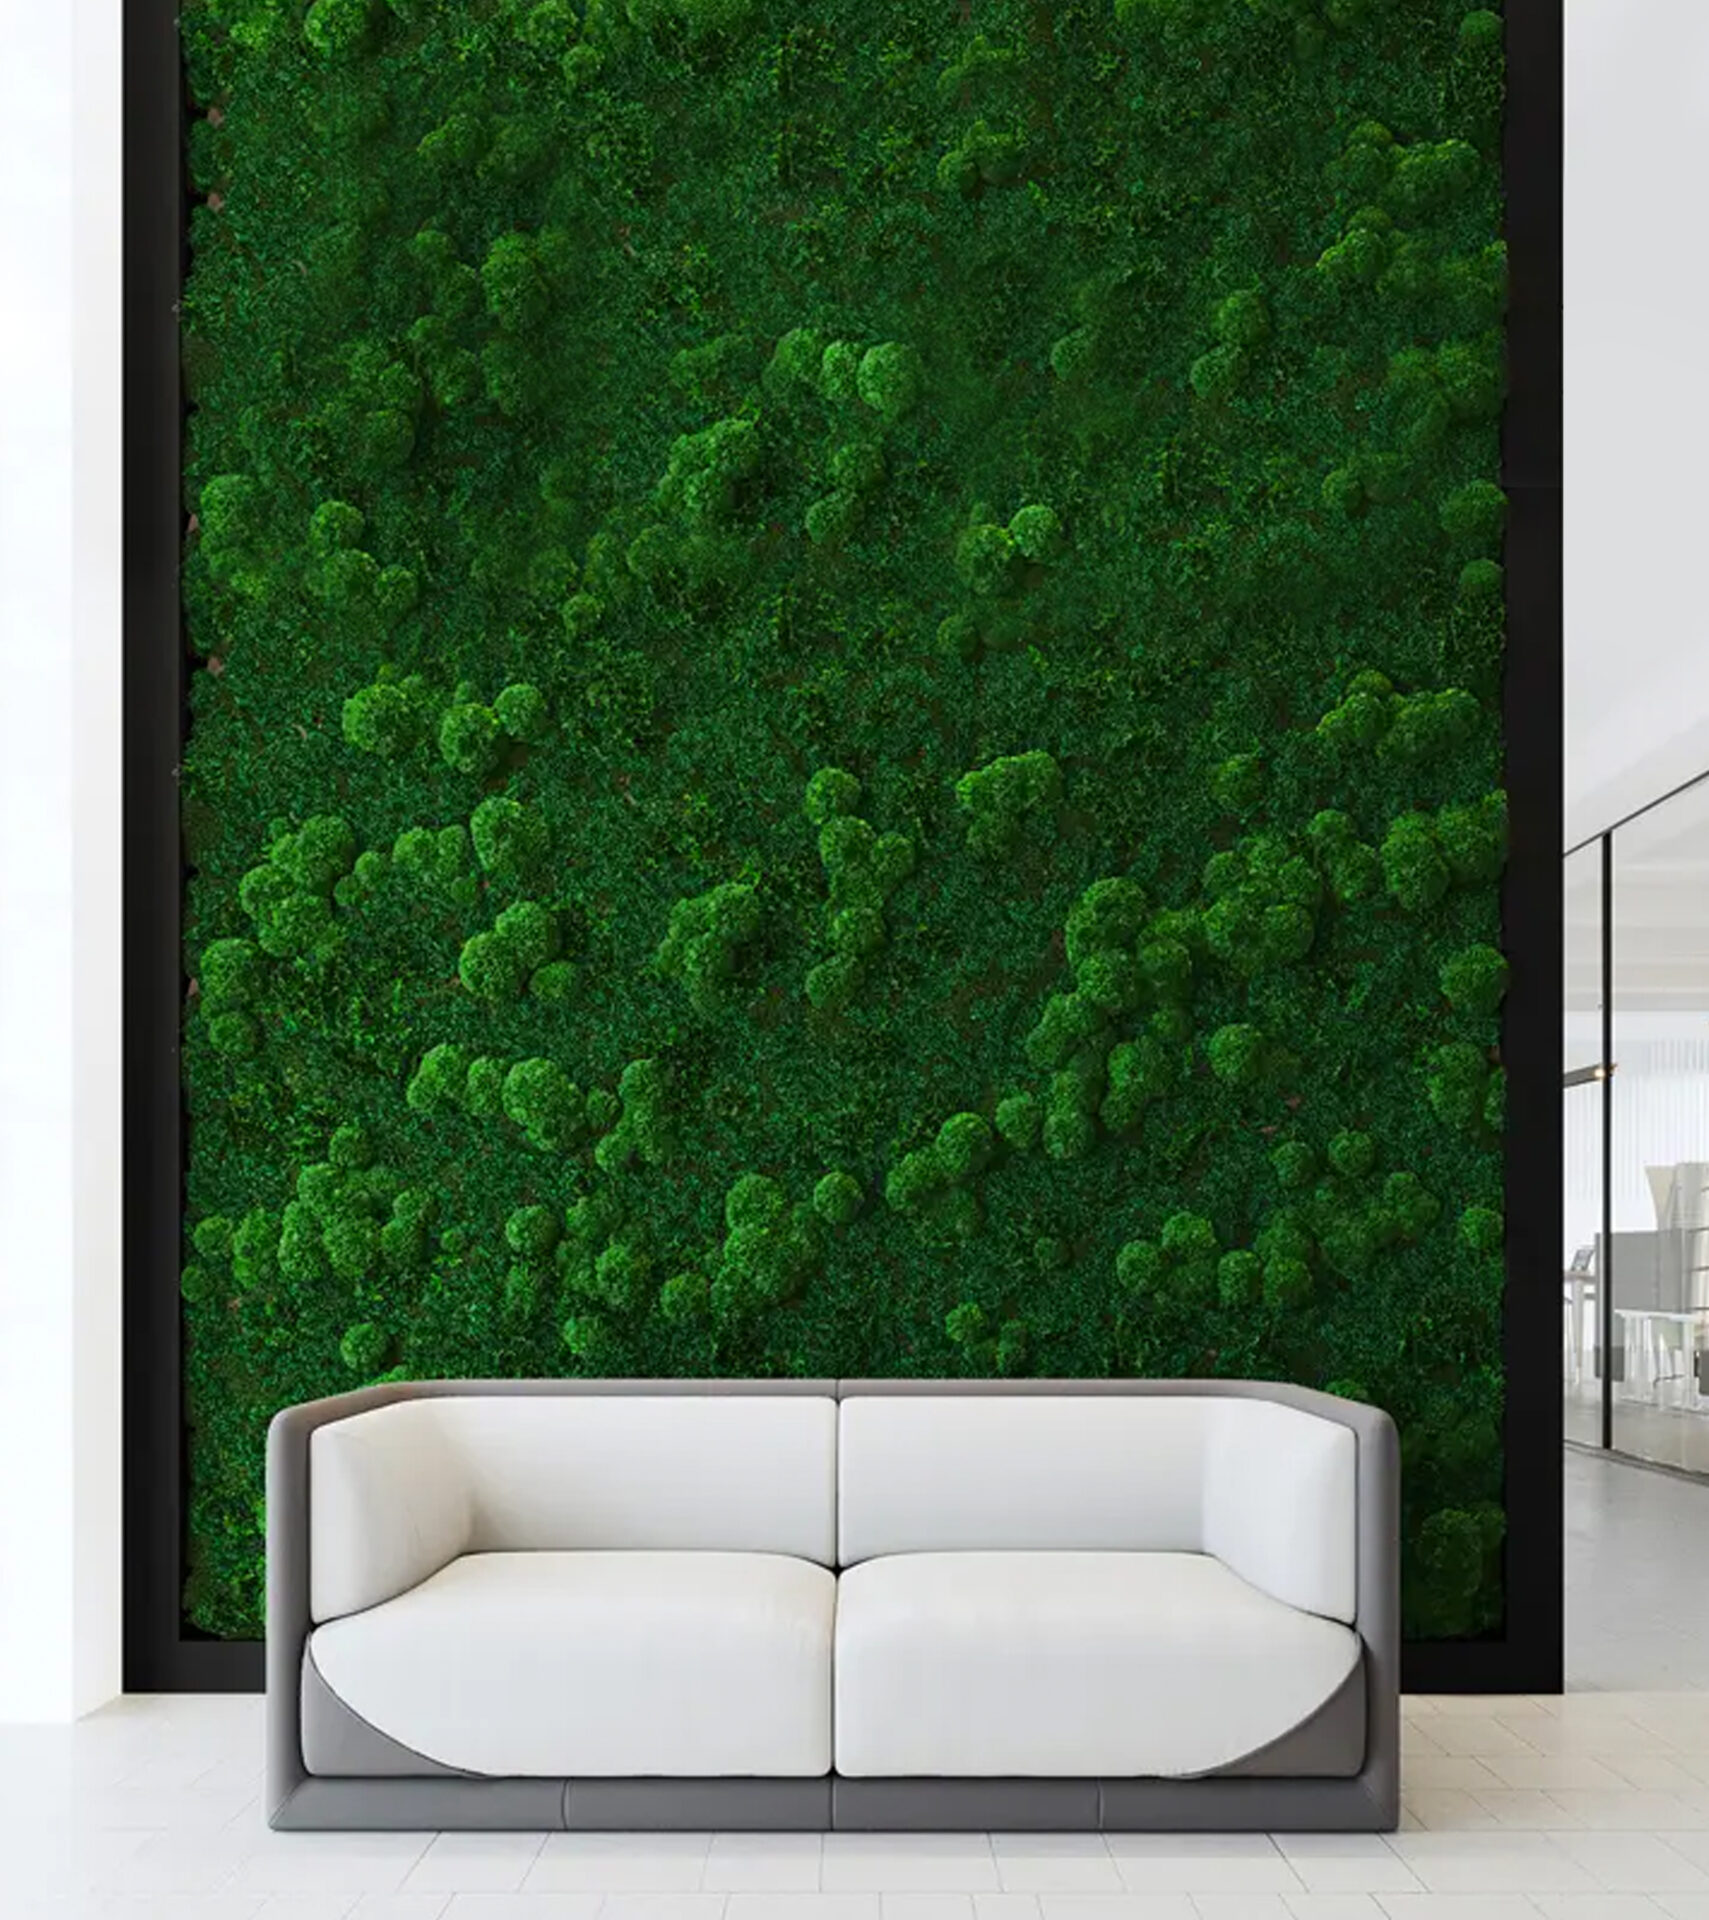 Quiet Earth Moss: full wall green spaces with acoustical value.